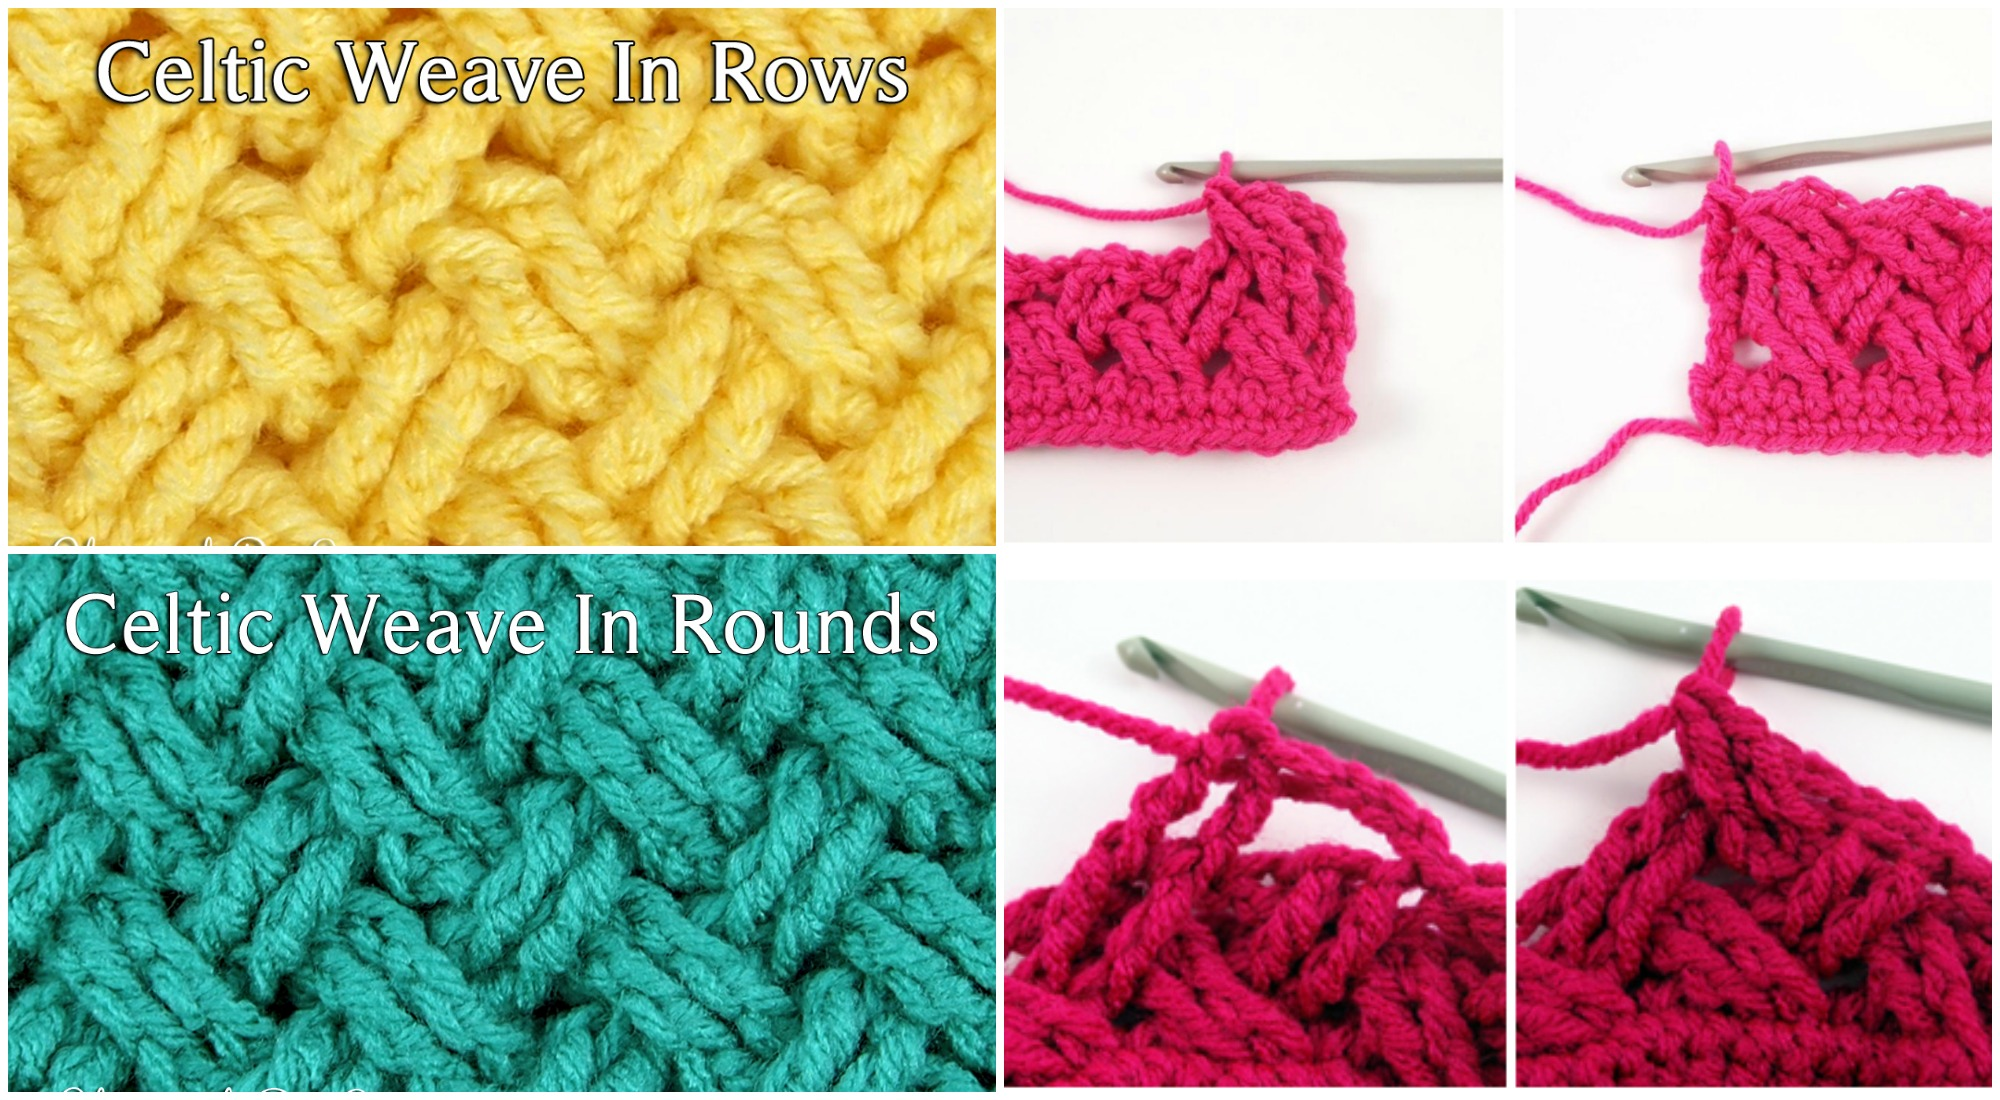 Crocheting In Rows : Crochet Celtic Stich in Rows and in Rounds